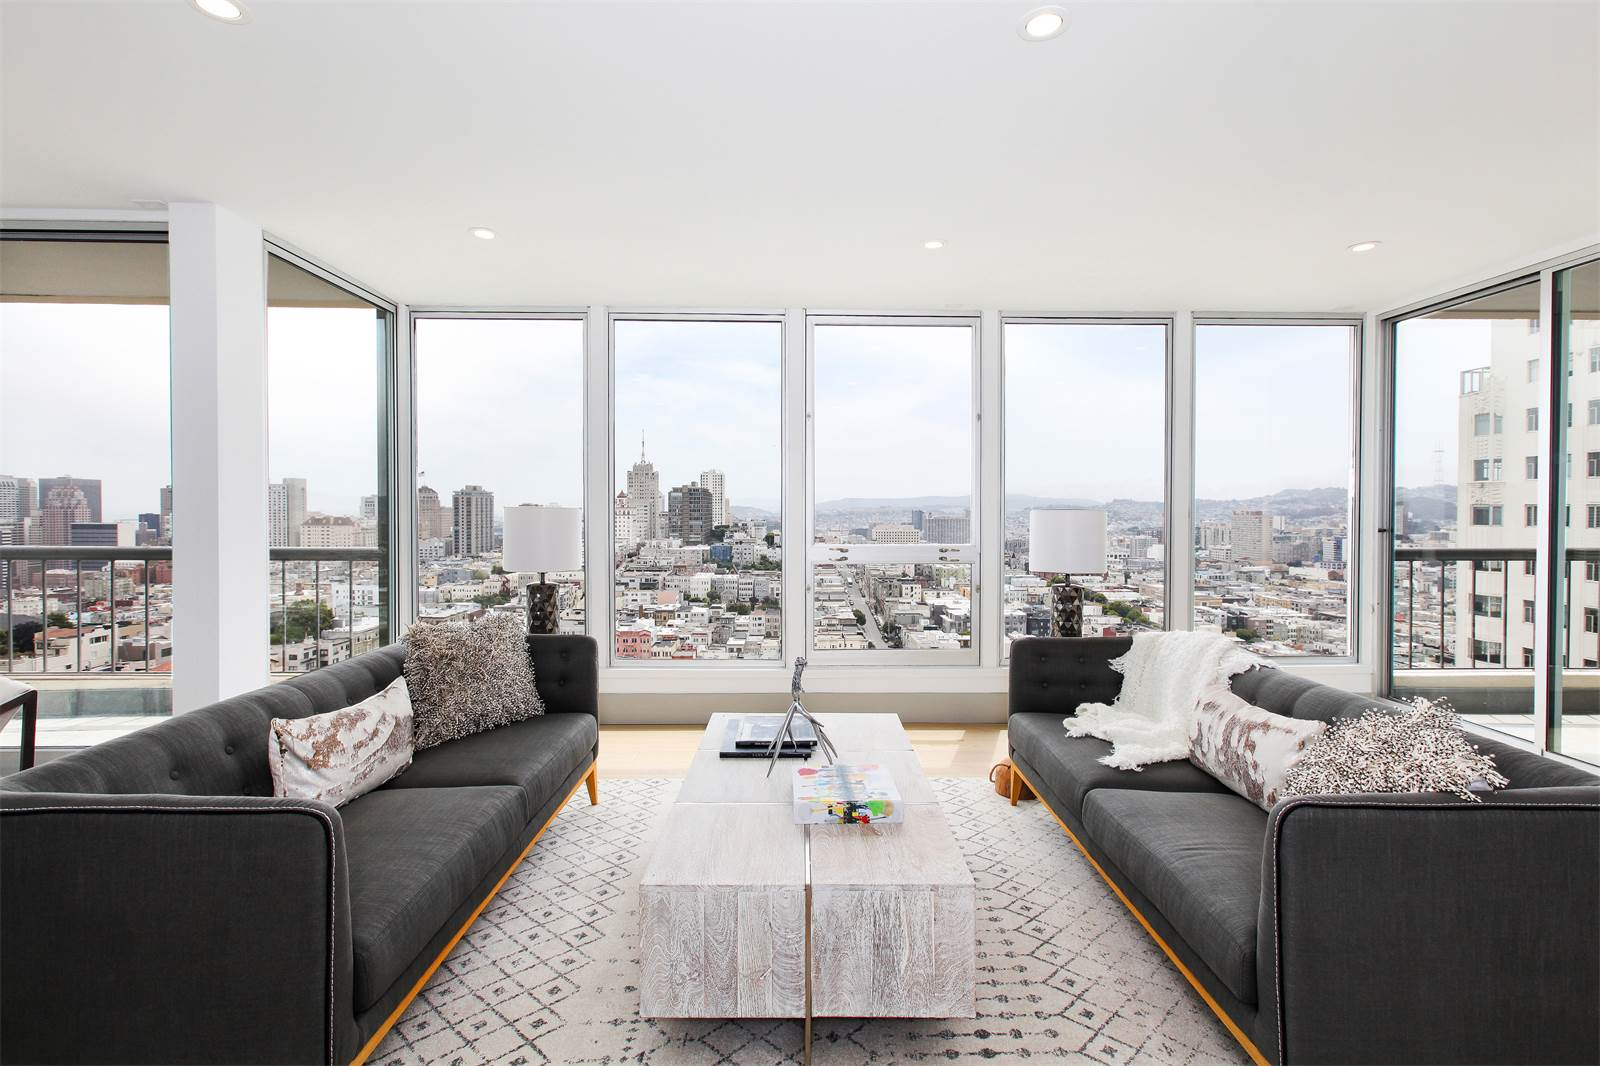 Views of San Francisco Bay can be seen from this 14th-floor, luxury condominium on Green Street in the highly sought-after Russian Hill neighborhood. Nearby, the car-free National Park bike path offers a scenic ride past Fort Mason and Presidio National Park to the Golden Gate Bridge.